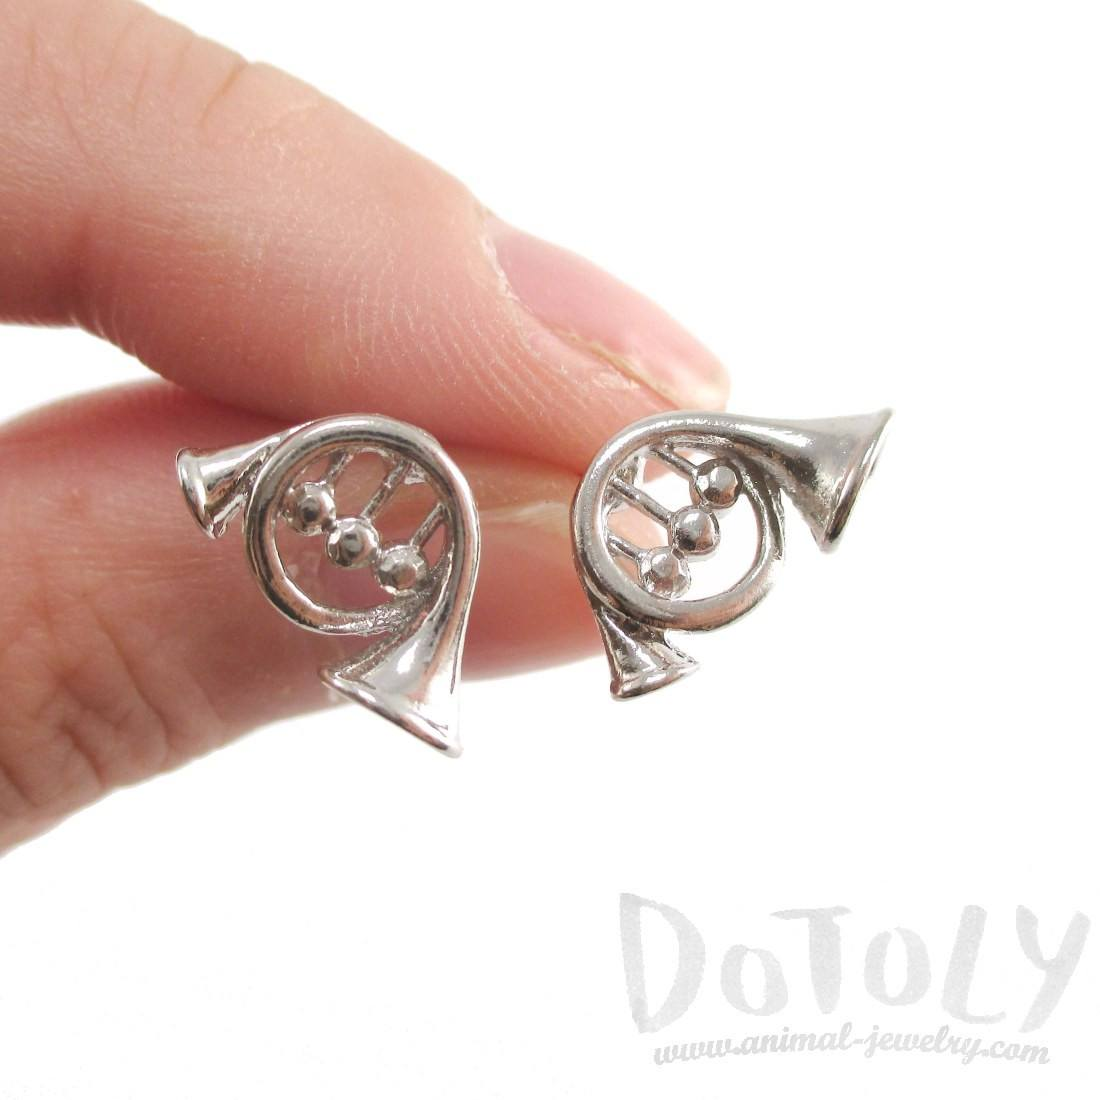 French Horn Shaped Music Themed Stud Earrings in Silver